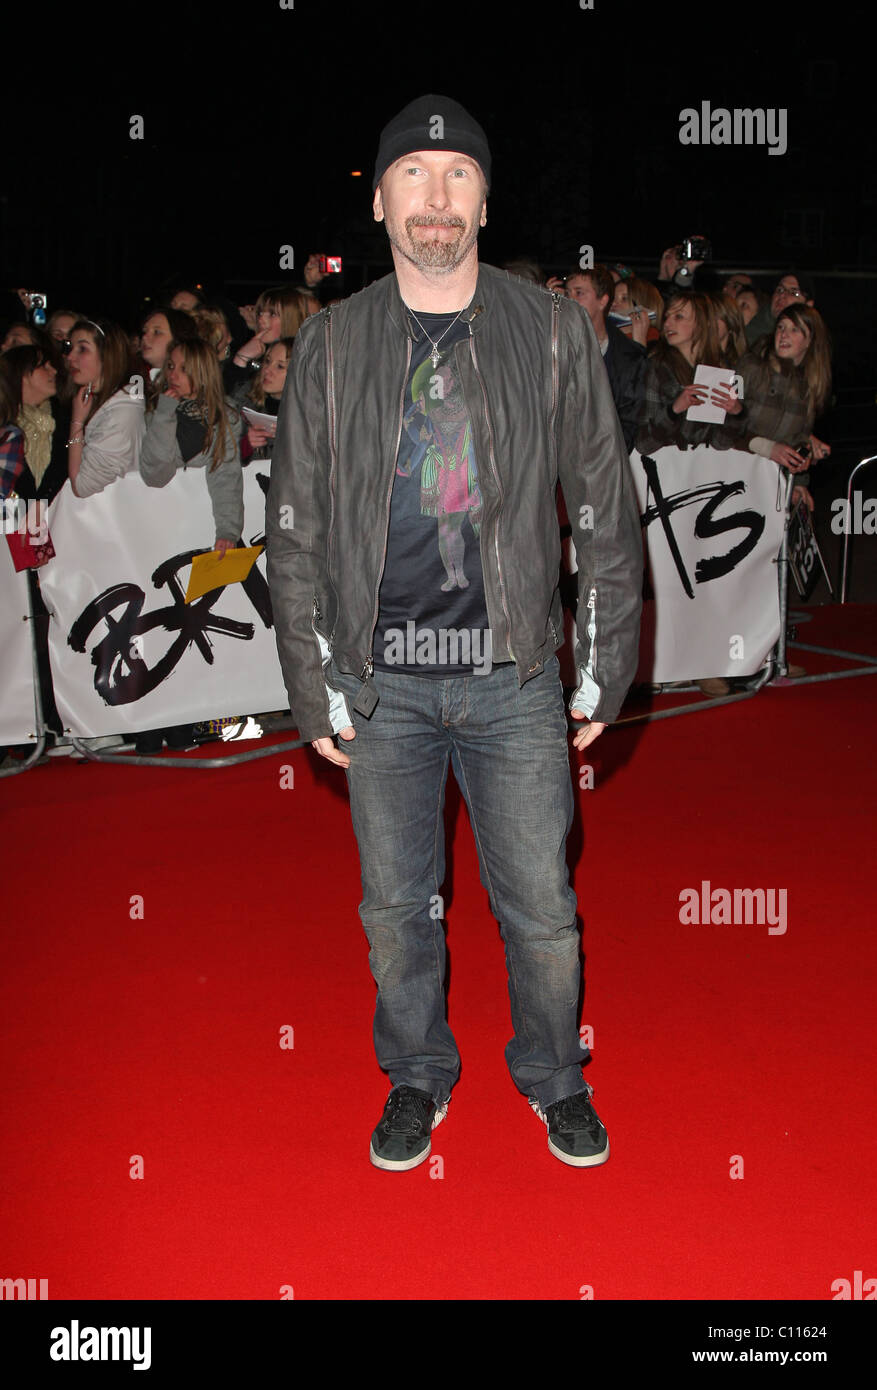 Carpet U2 The Edge Of U2 The 2009 Brit Awards Red Carpet Arrivals Held At